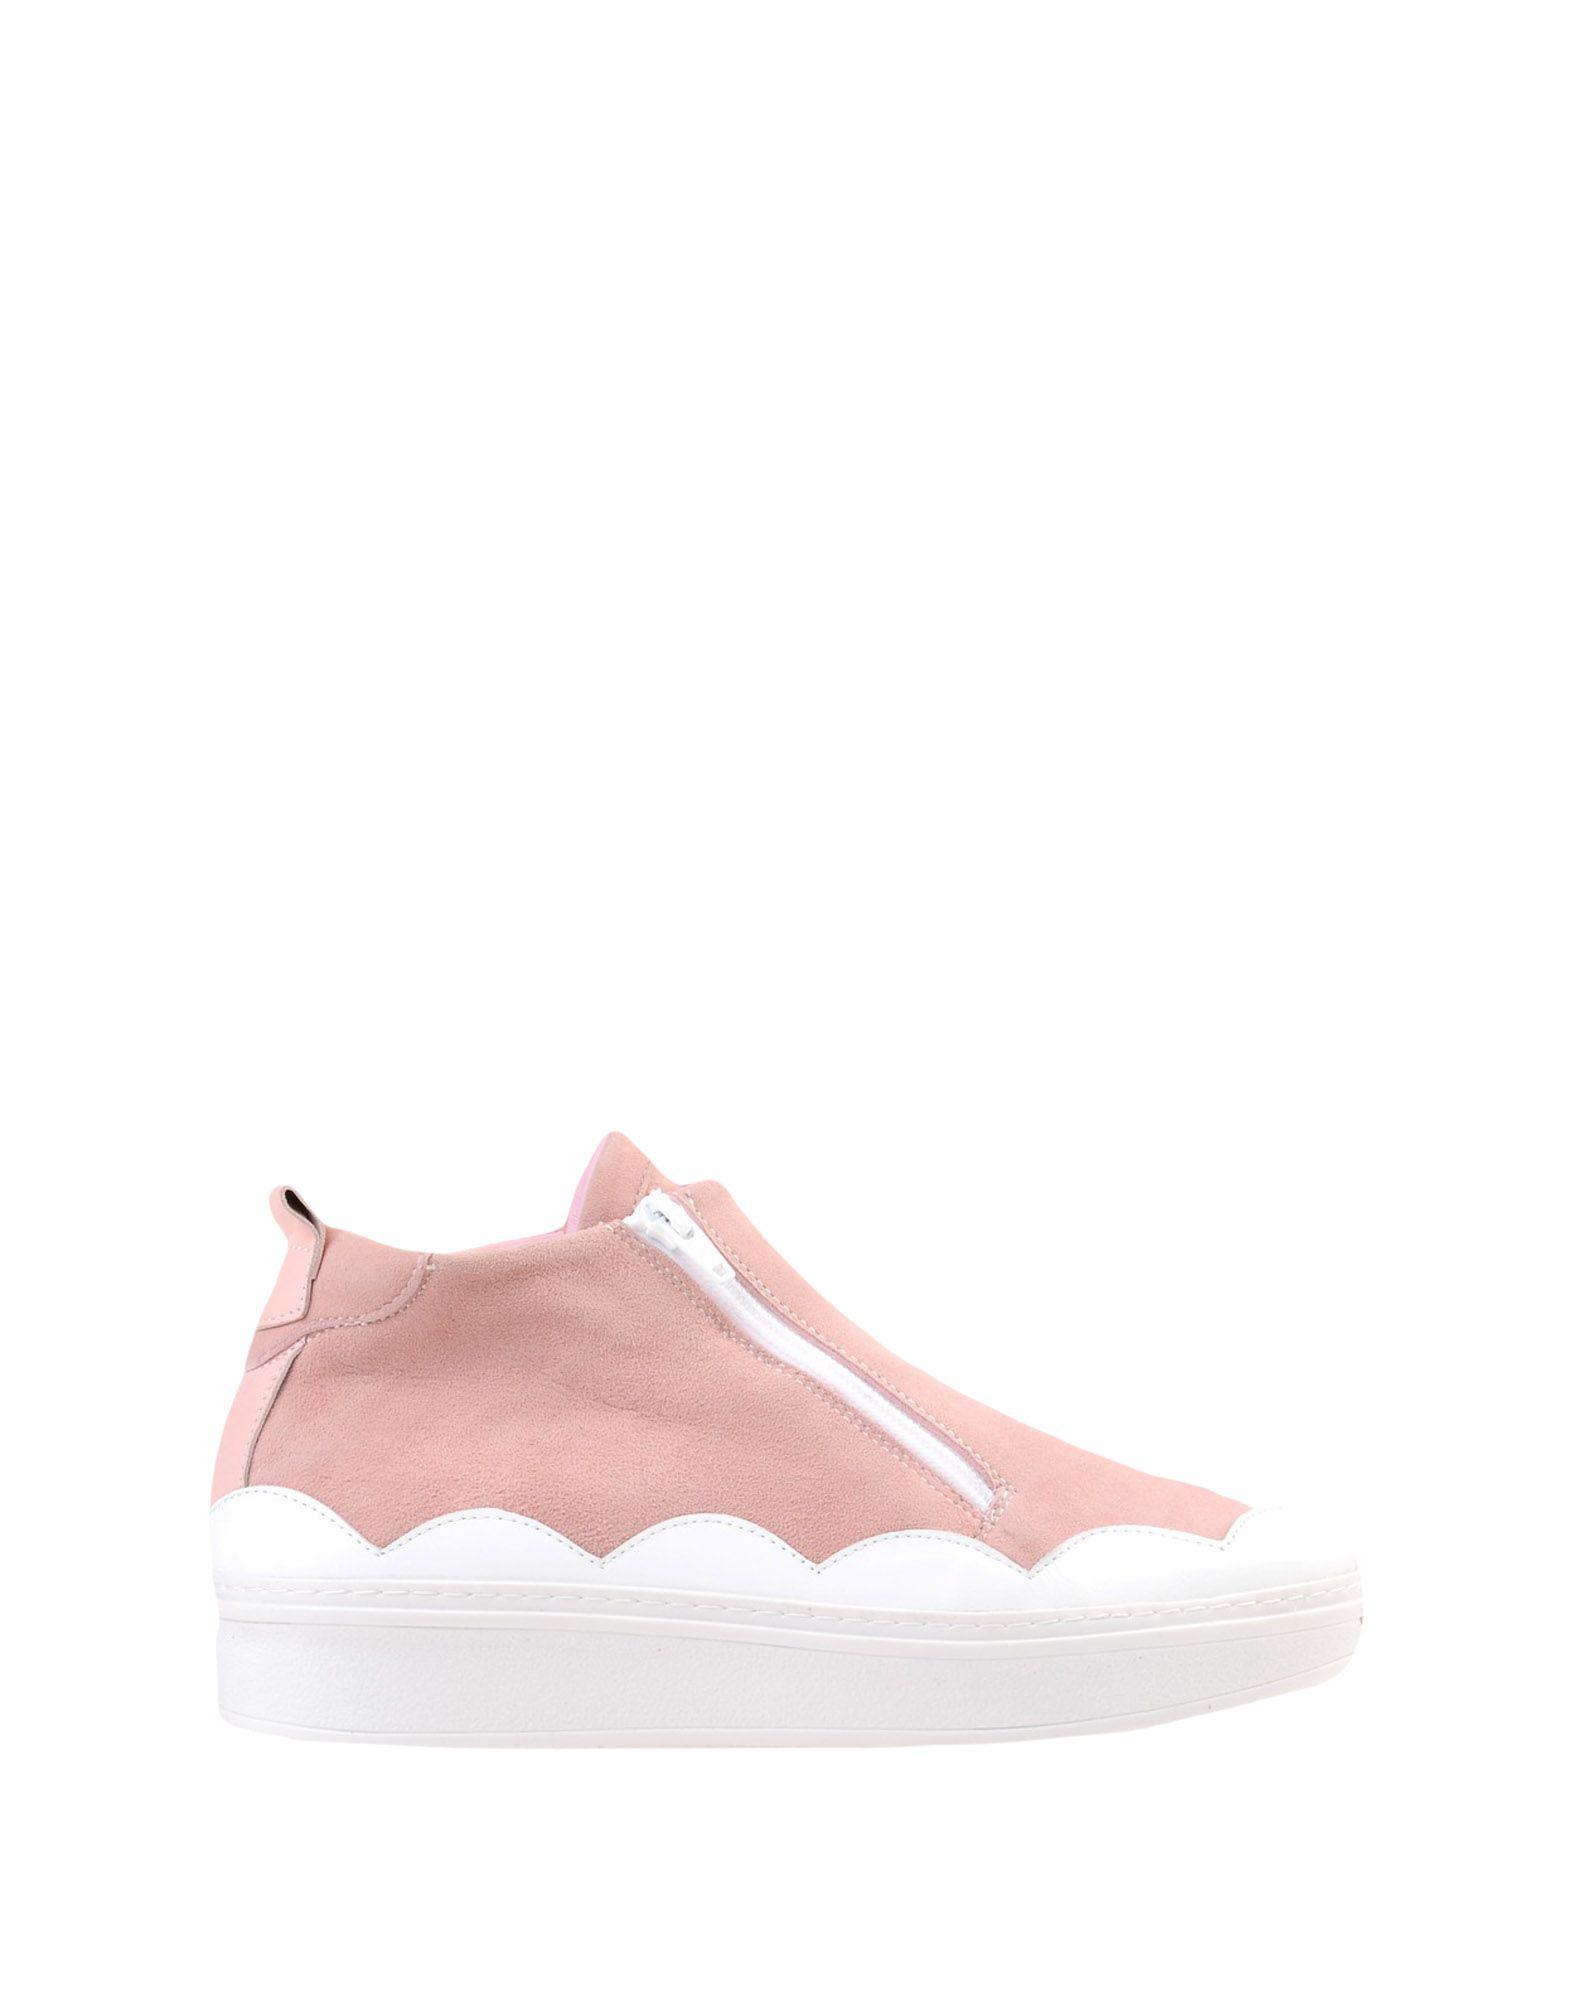 huge discount 2ae55 5b6e6 maison-shoeshibar-Pink-High-tops-Sneakers.jpeg